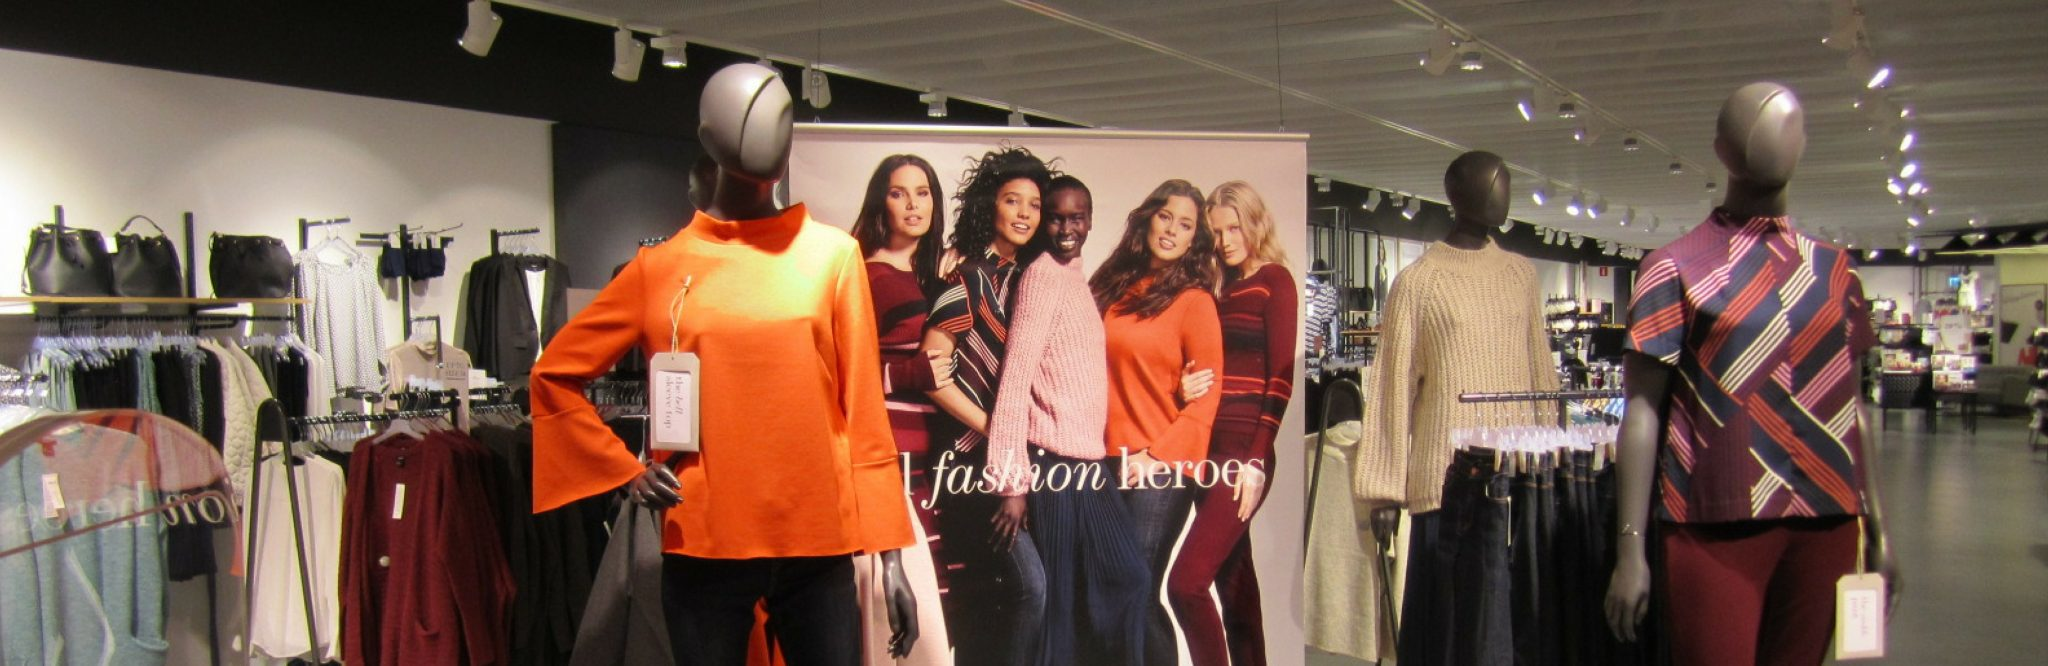 Your store's employees might have hidden talents for styling merchandise! Unlock their potential with flexible lighting and product display solutions from Tego.